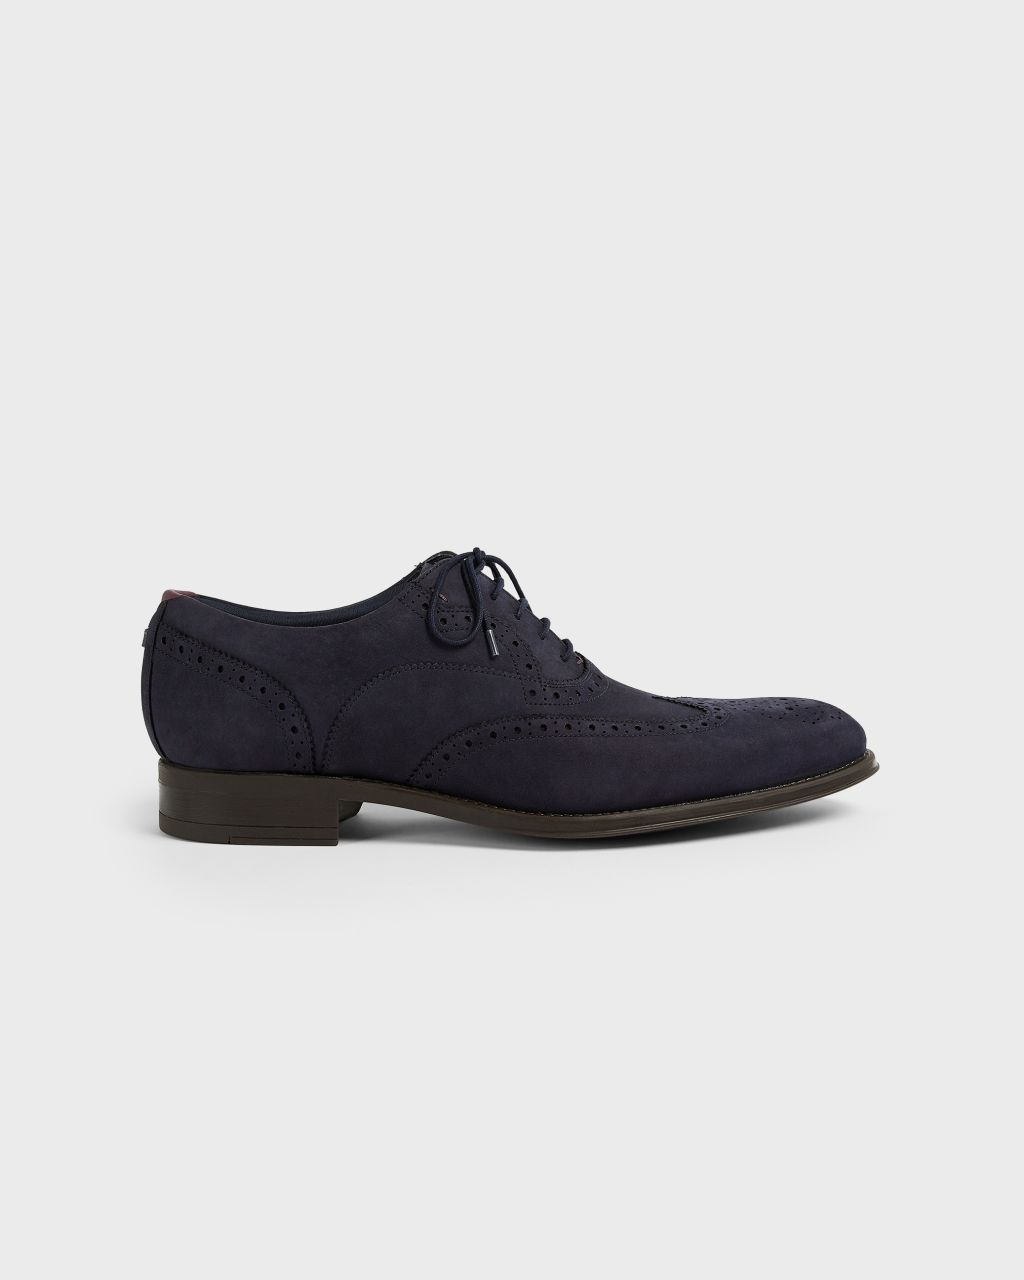 TED BAKER Nubuck Brogue Shoe | TED BAKER SALE